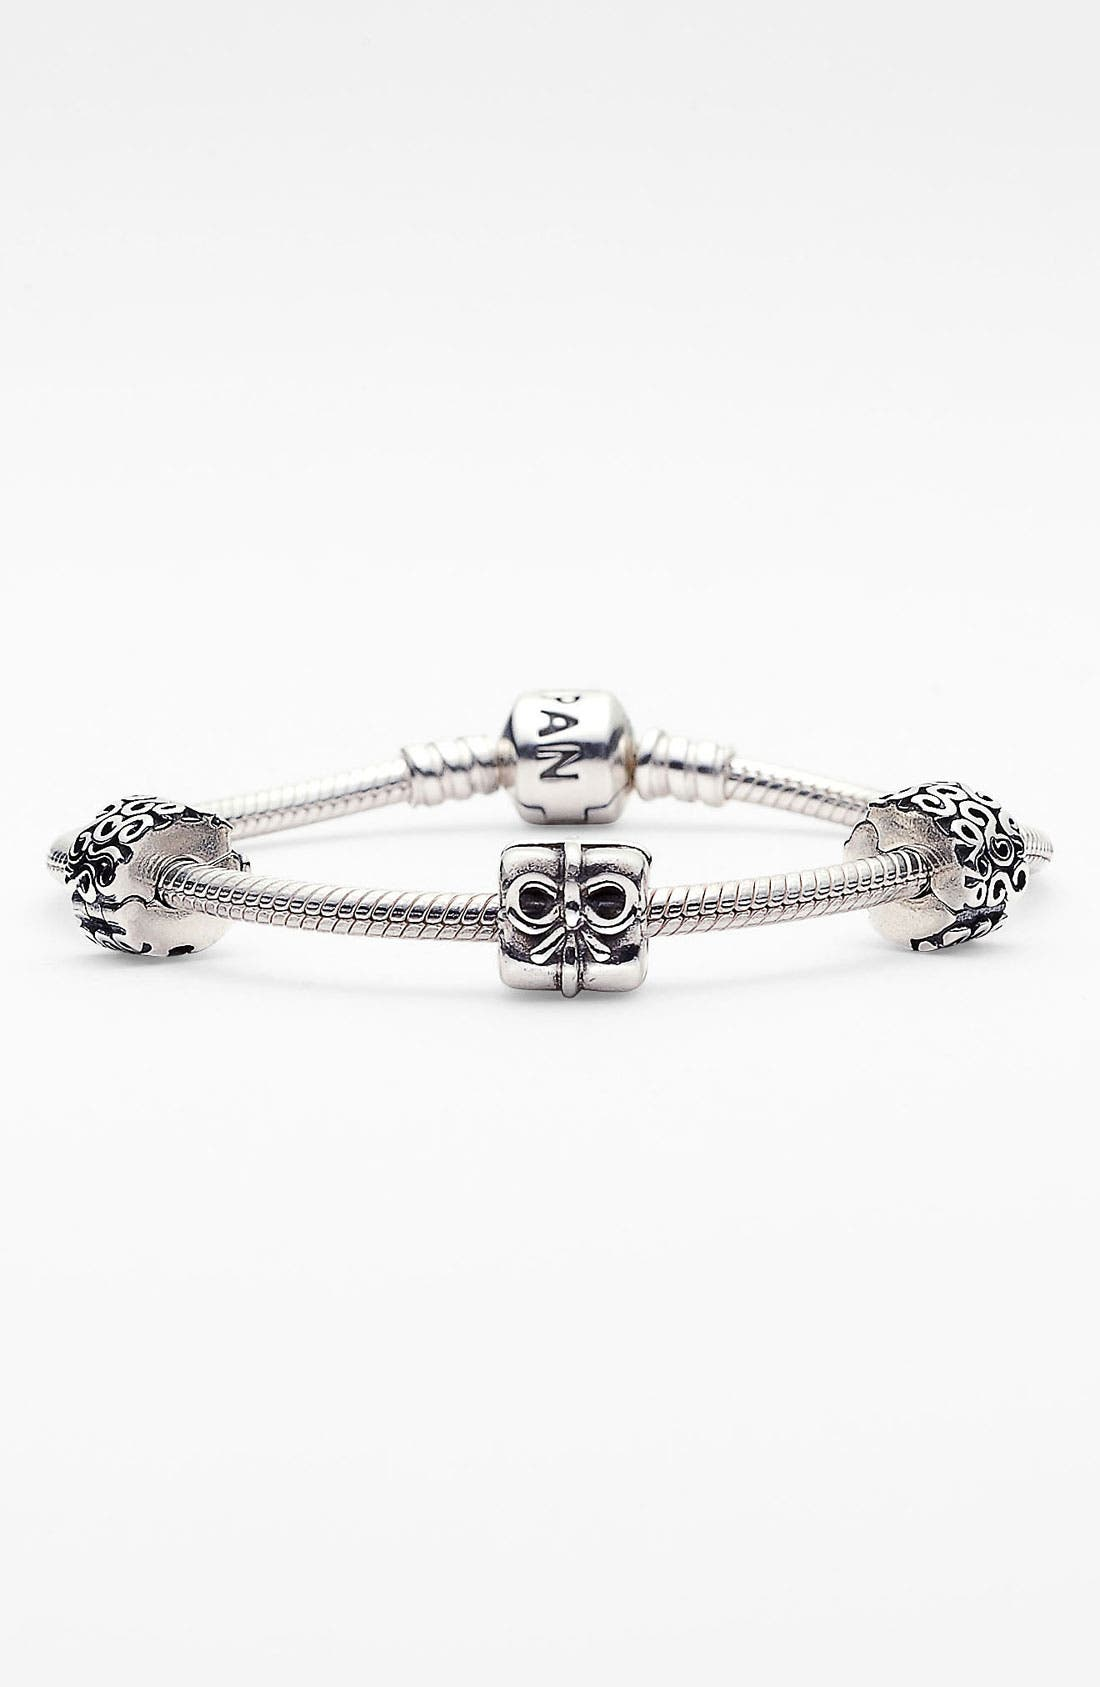 Alternate Image 1 Selected - PANDORA Boxed Holiday Bracelet Gift Set (Limited Edition) ($160 Value)